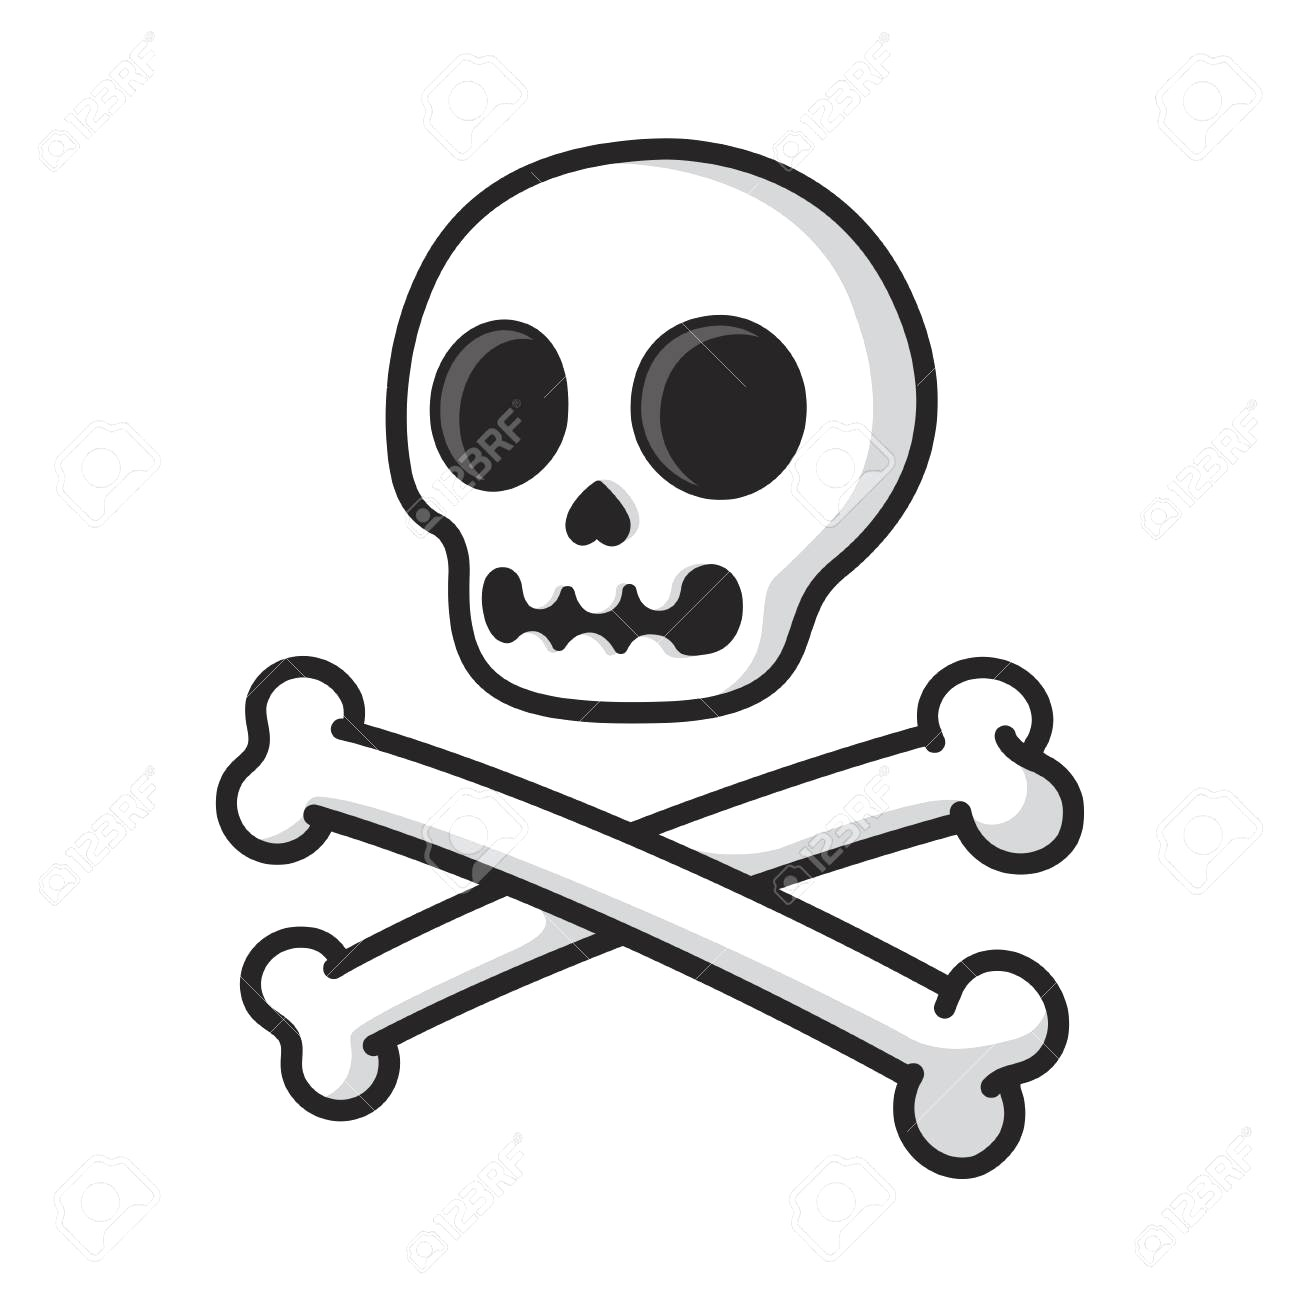 1300x1300 Simple Cartoon Skull And Crossbones Isolated On White